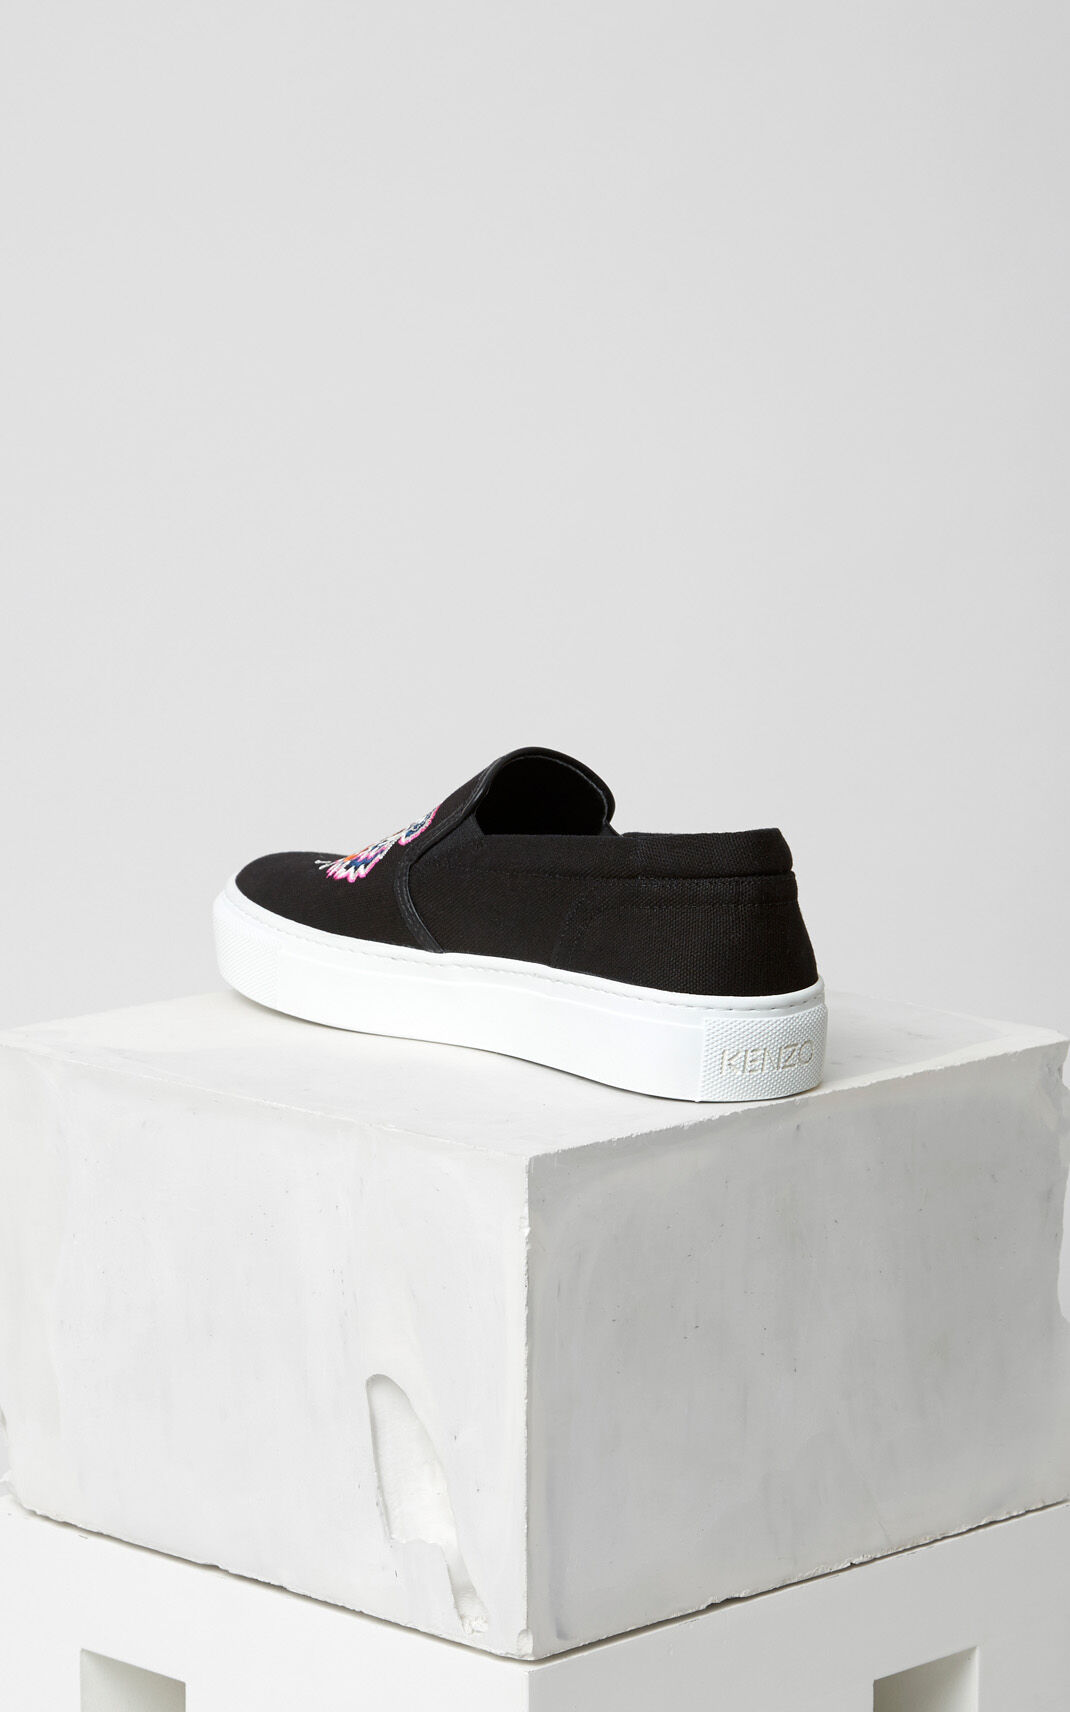 BLACK Tiger Slip-on for unisex KENZO